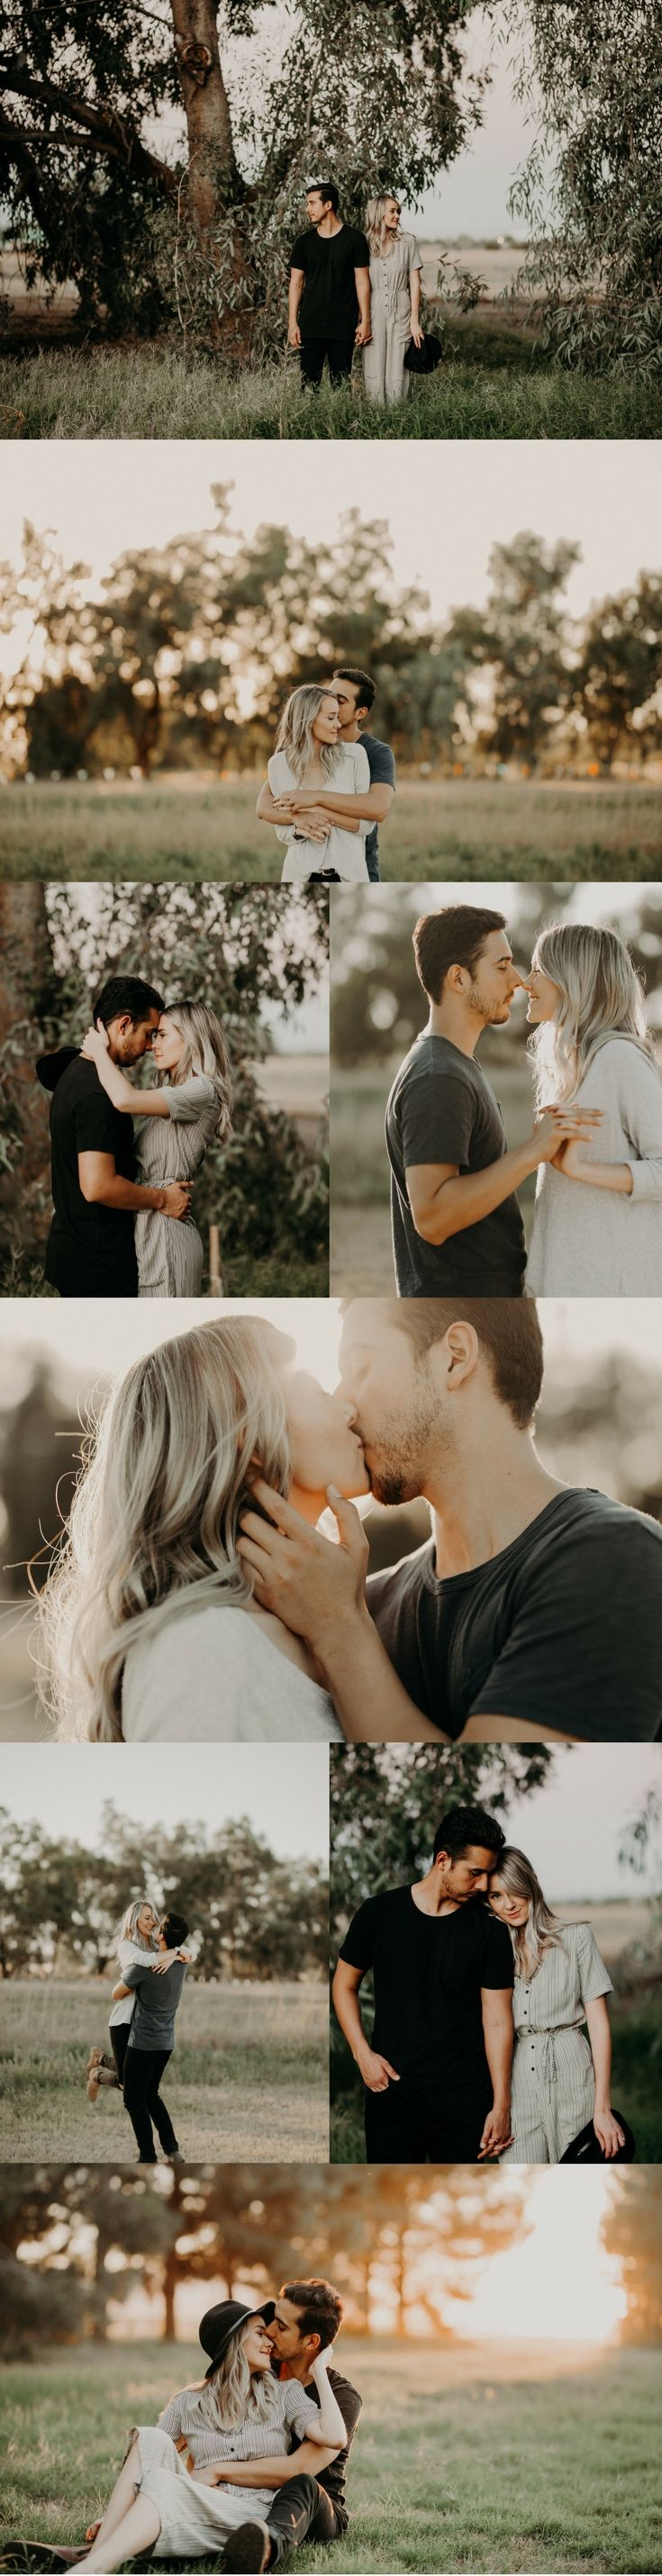 Samantha and David's Engagement Shoot With Lex Photo and Film in Queen Creek AZ | HOW WE PLANNED OUR ENGAGEMENT